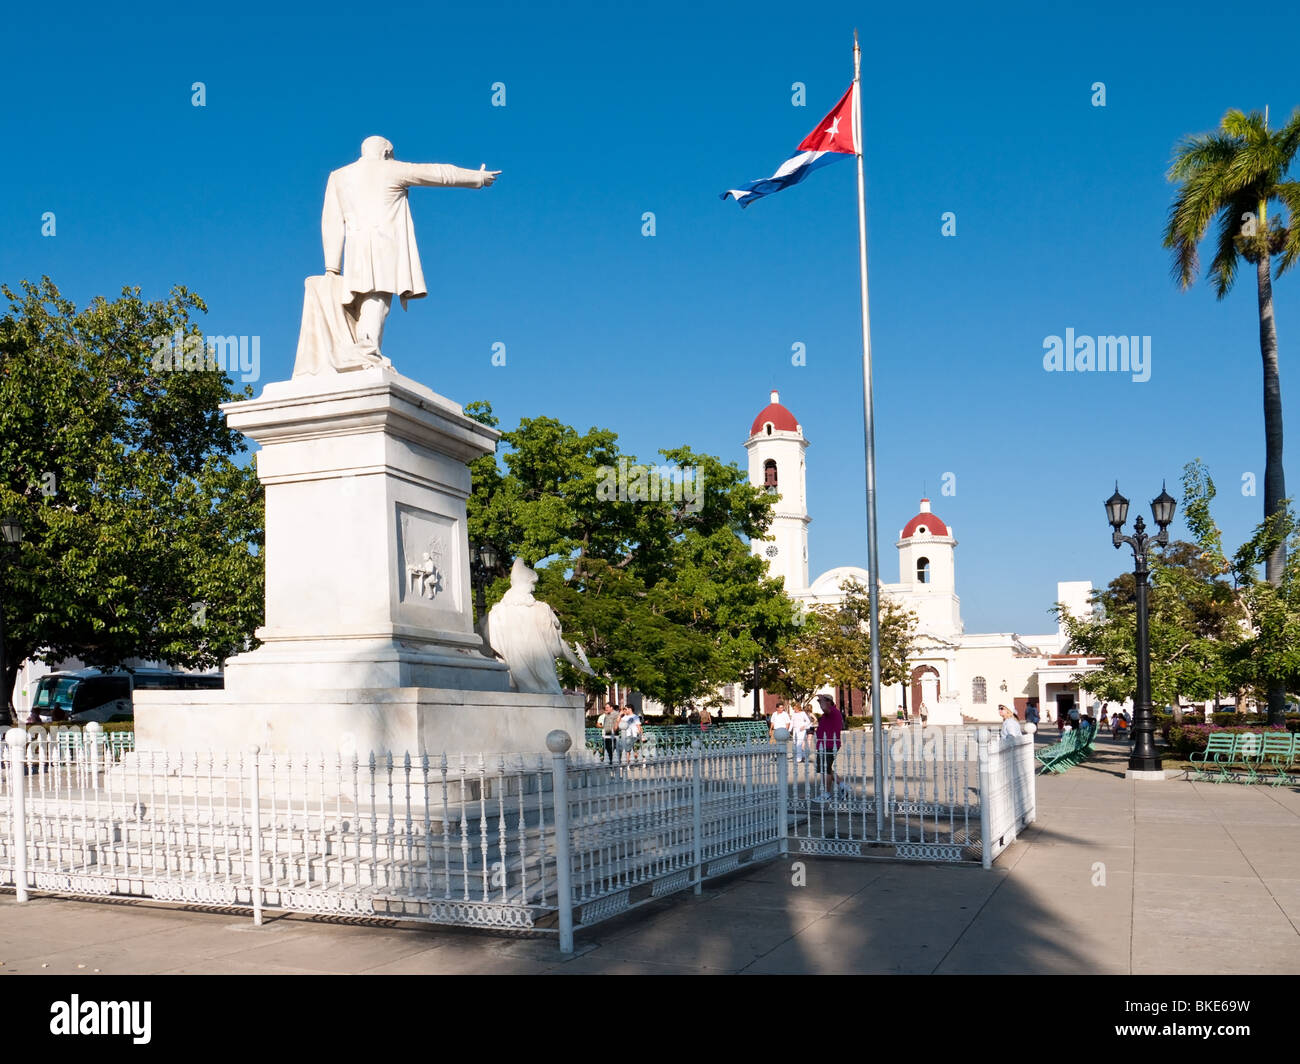 Cuba Parque Marti Cienfuegos High Resolution Stock Photography And Images Alamy